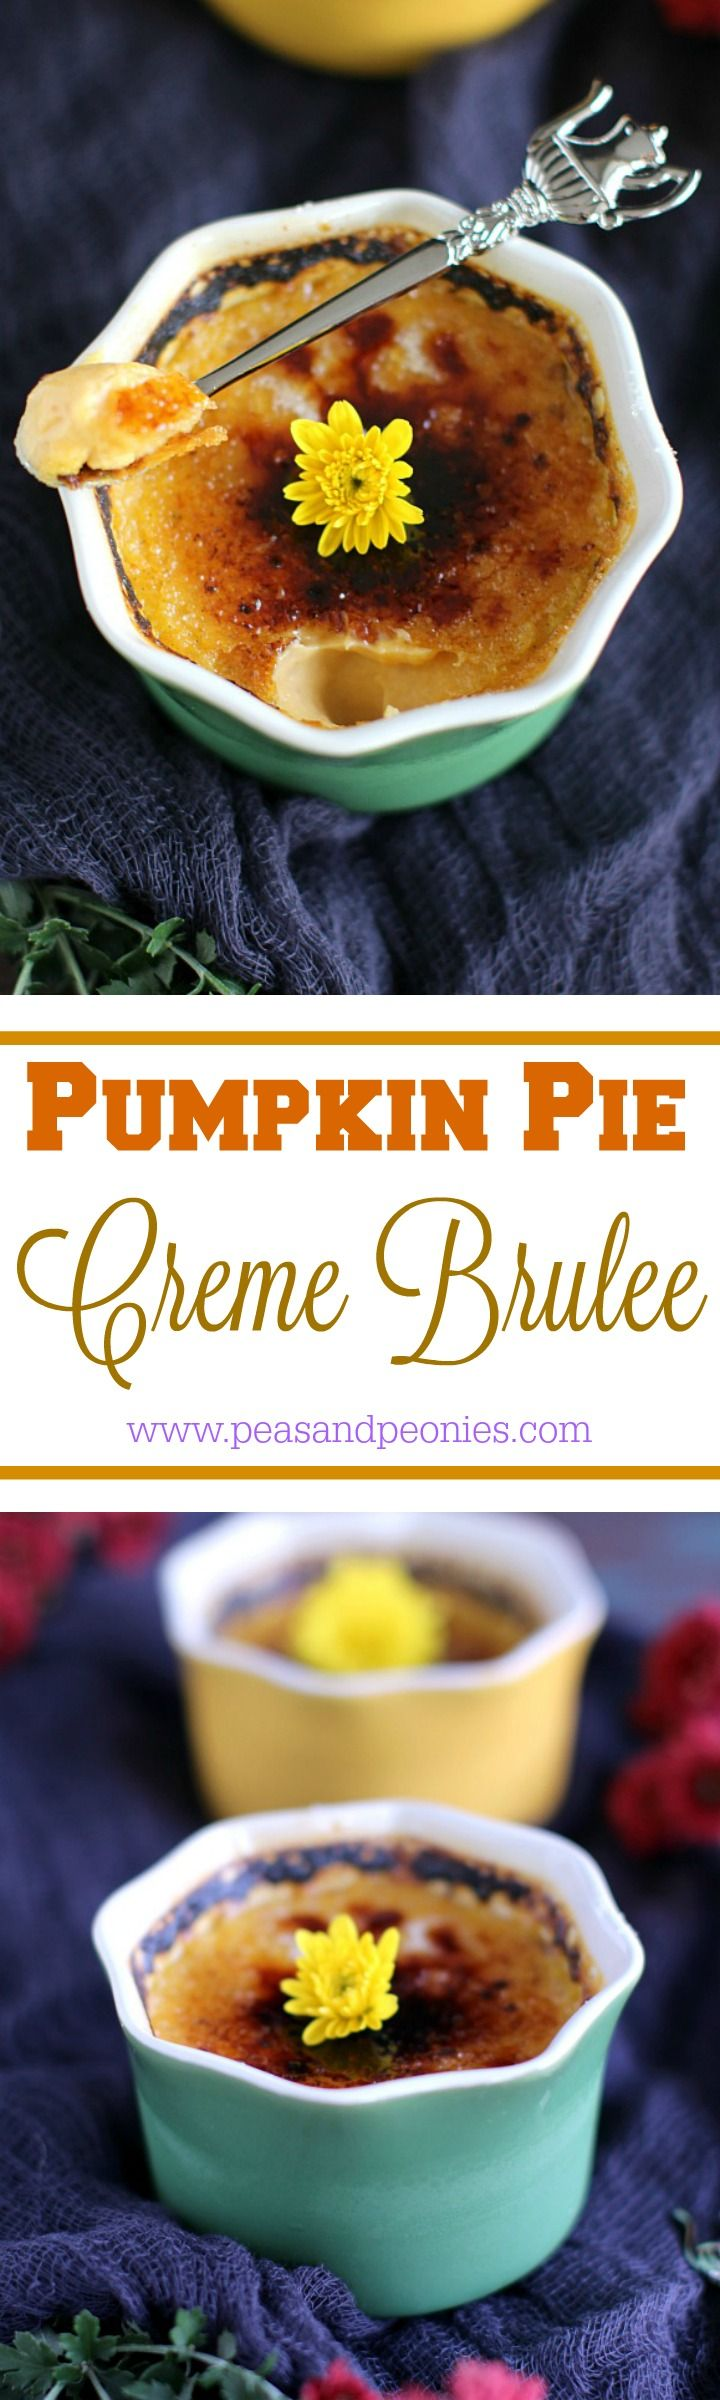 Pumpkin Pie Creme Brûlée - This pumpkin pie creme brulee is a French classic dessert transformed to sweeten your Thanksgiving table with its pumpkin flavor and crunchy top. Peas and Peonies